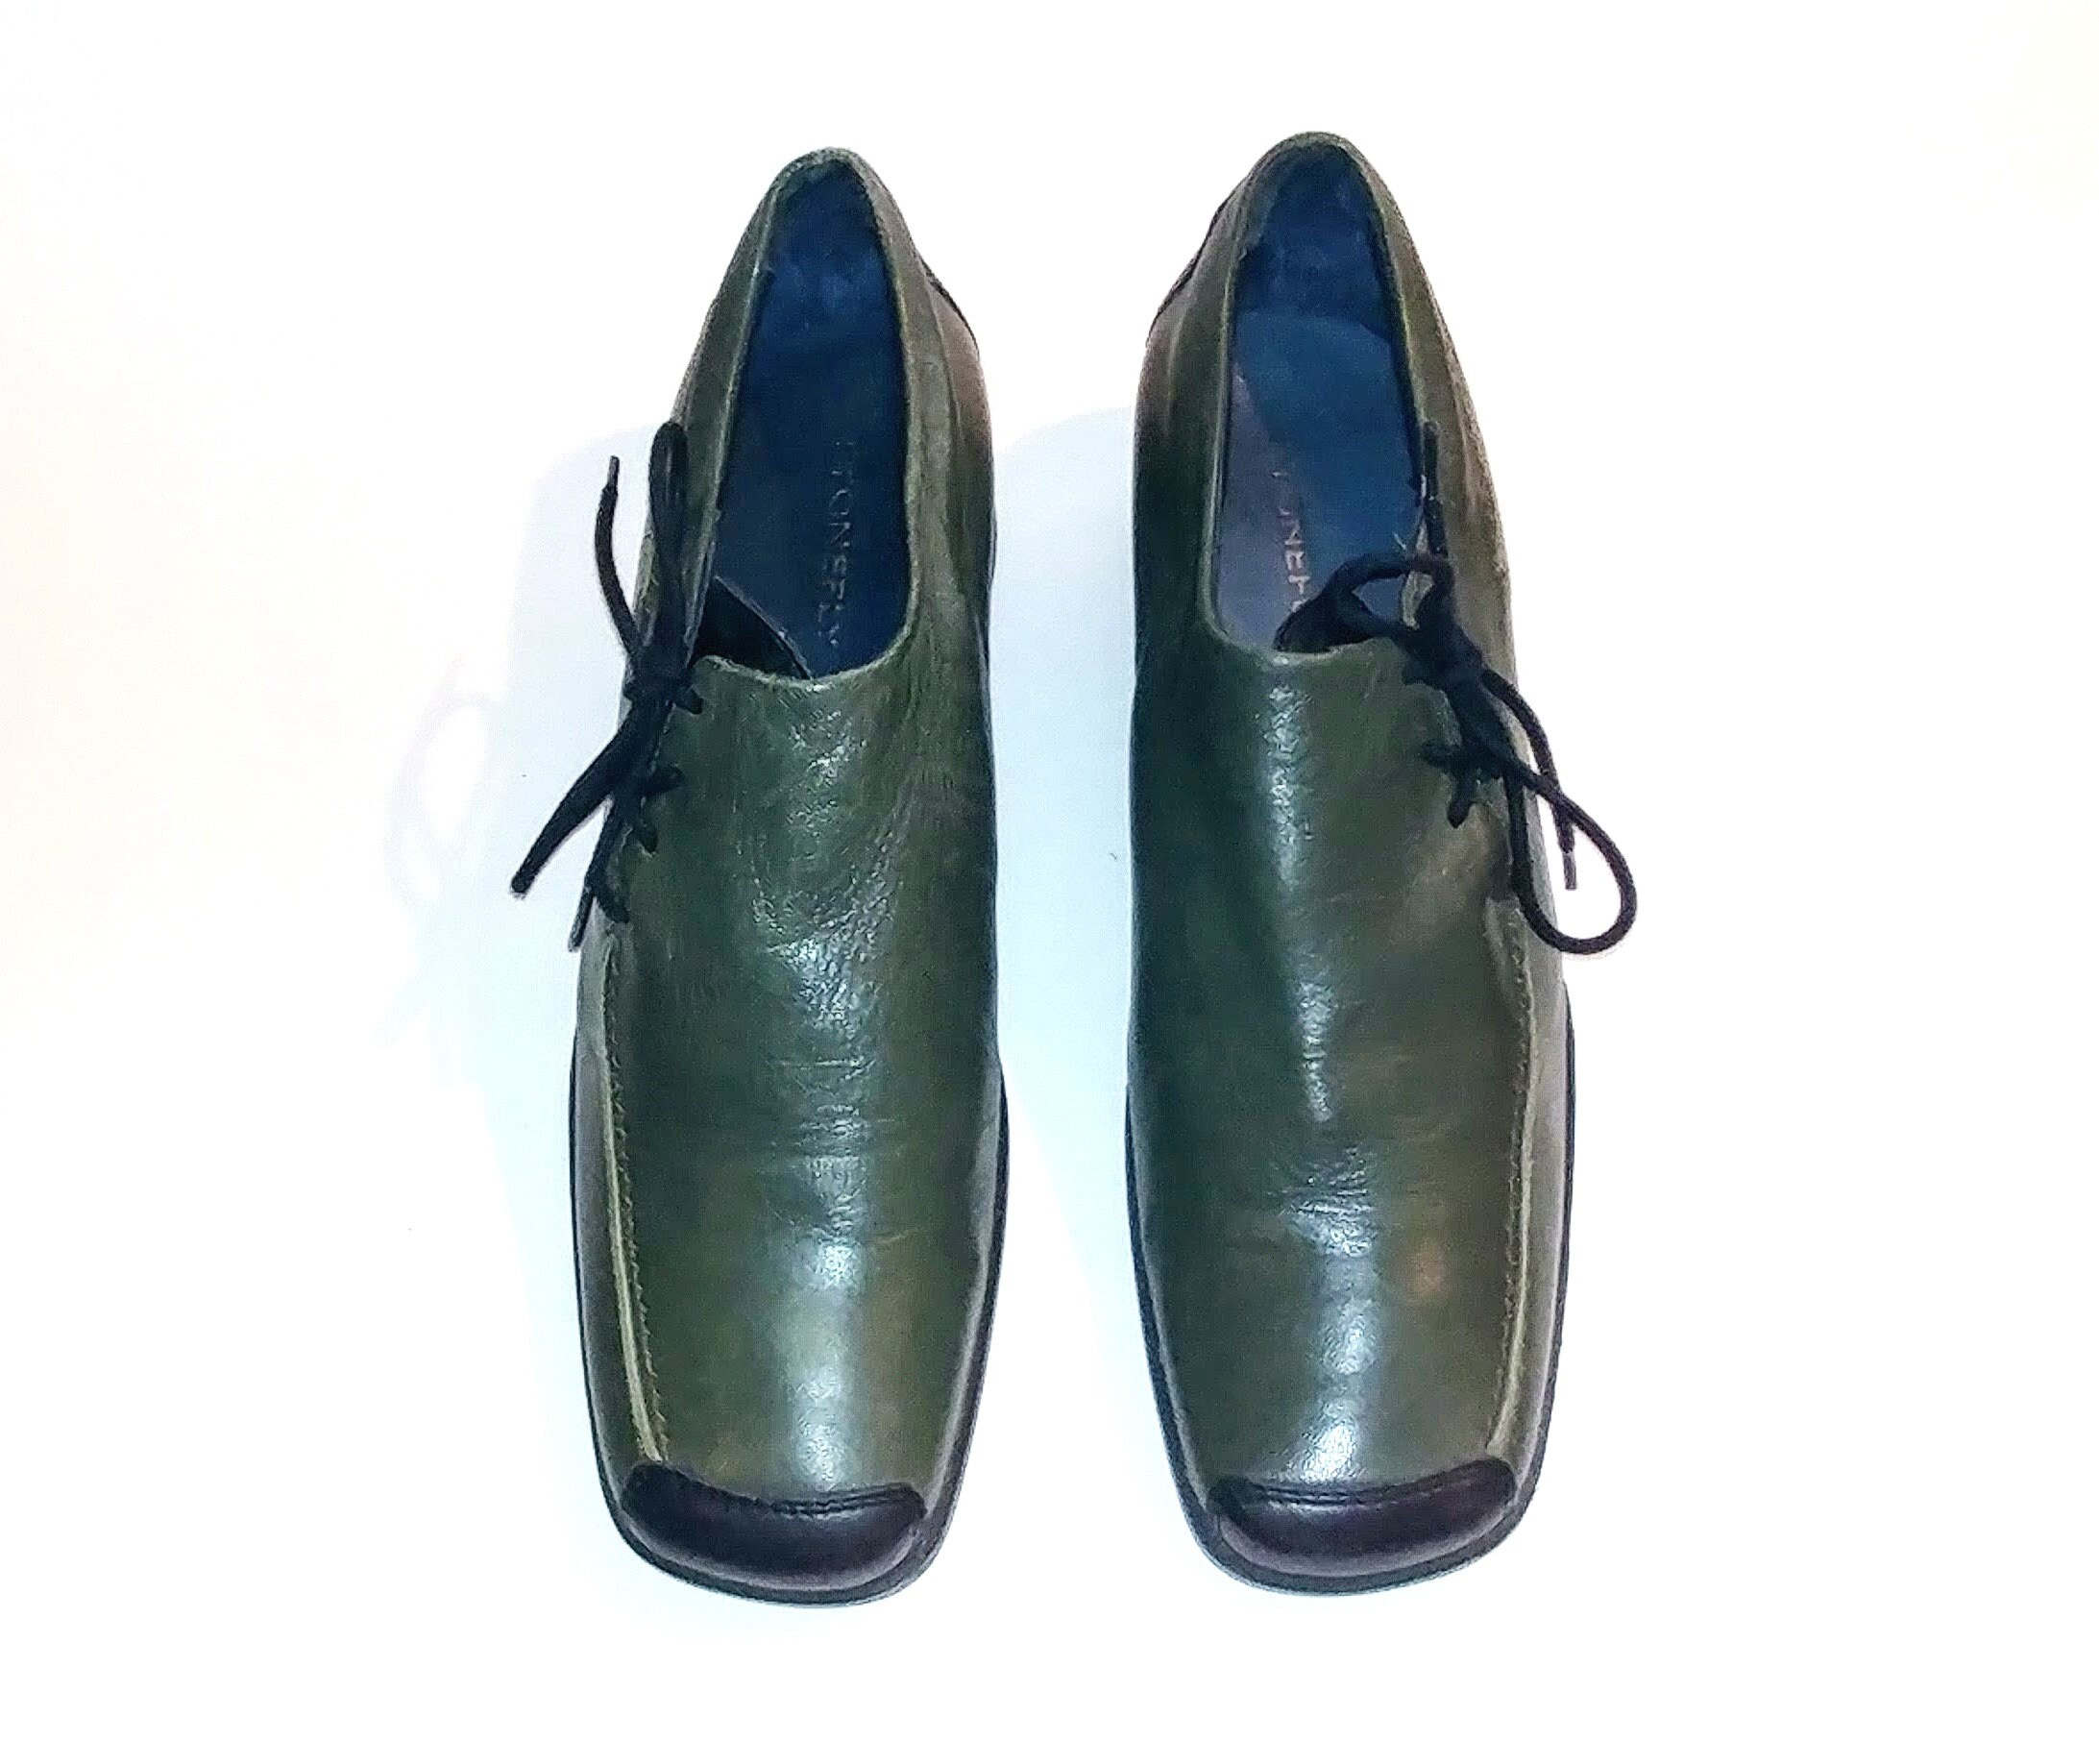 acb4c78150f10 1990's Vintage VTG Stonefly Green Black Genuine Leather Oxford Shoes 9.5/40